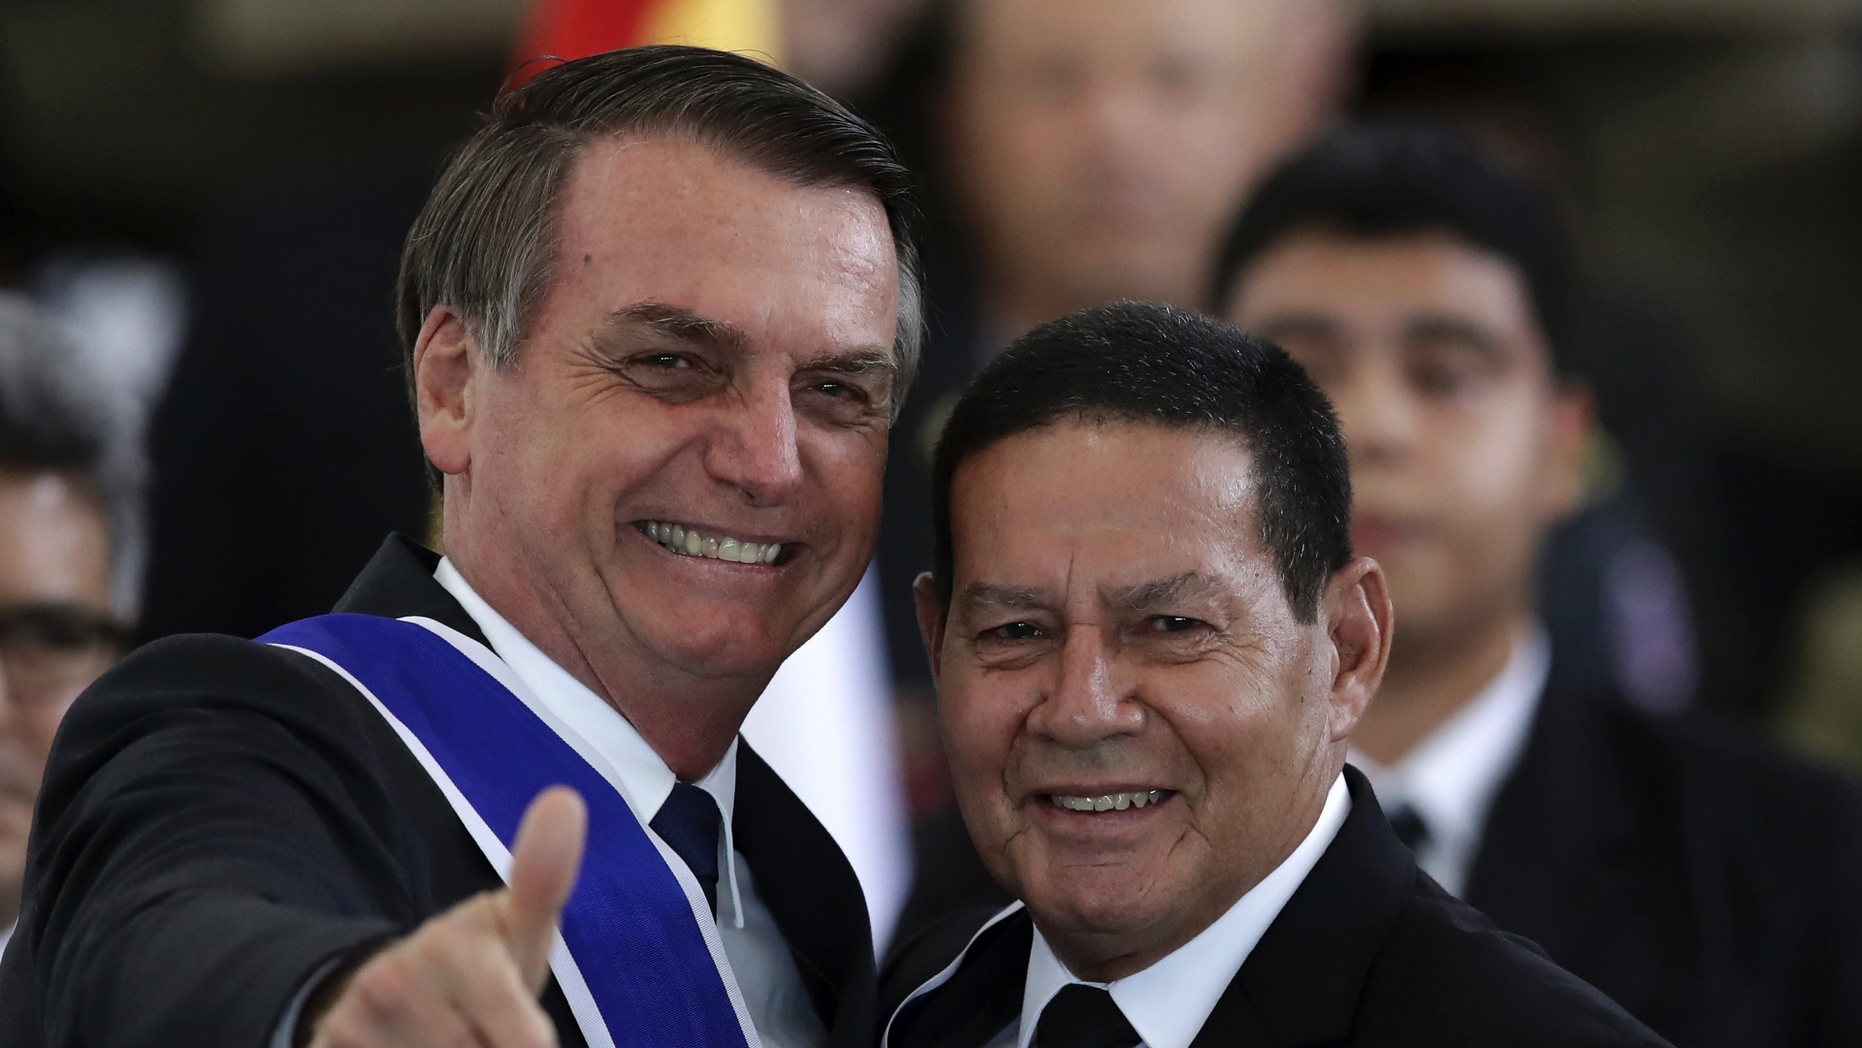 Brazil's President Jair Bolsonaro flashes a thumbs up after bestowing the insignia of the Order of Rio Branco to Vice President Hamilton Mourao, right, during a ceremony to commemorate Diplomat Day, at the Itamarty Palace in Brasilia, Brazil, Tuesday, May 3, 2019. (AP Photo/Eraldo Peres)